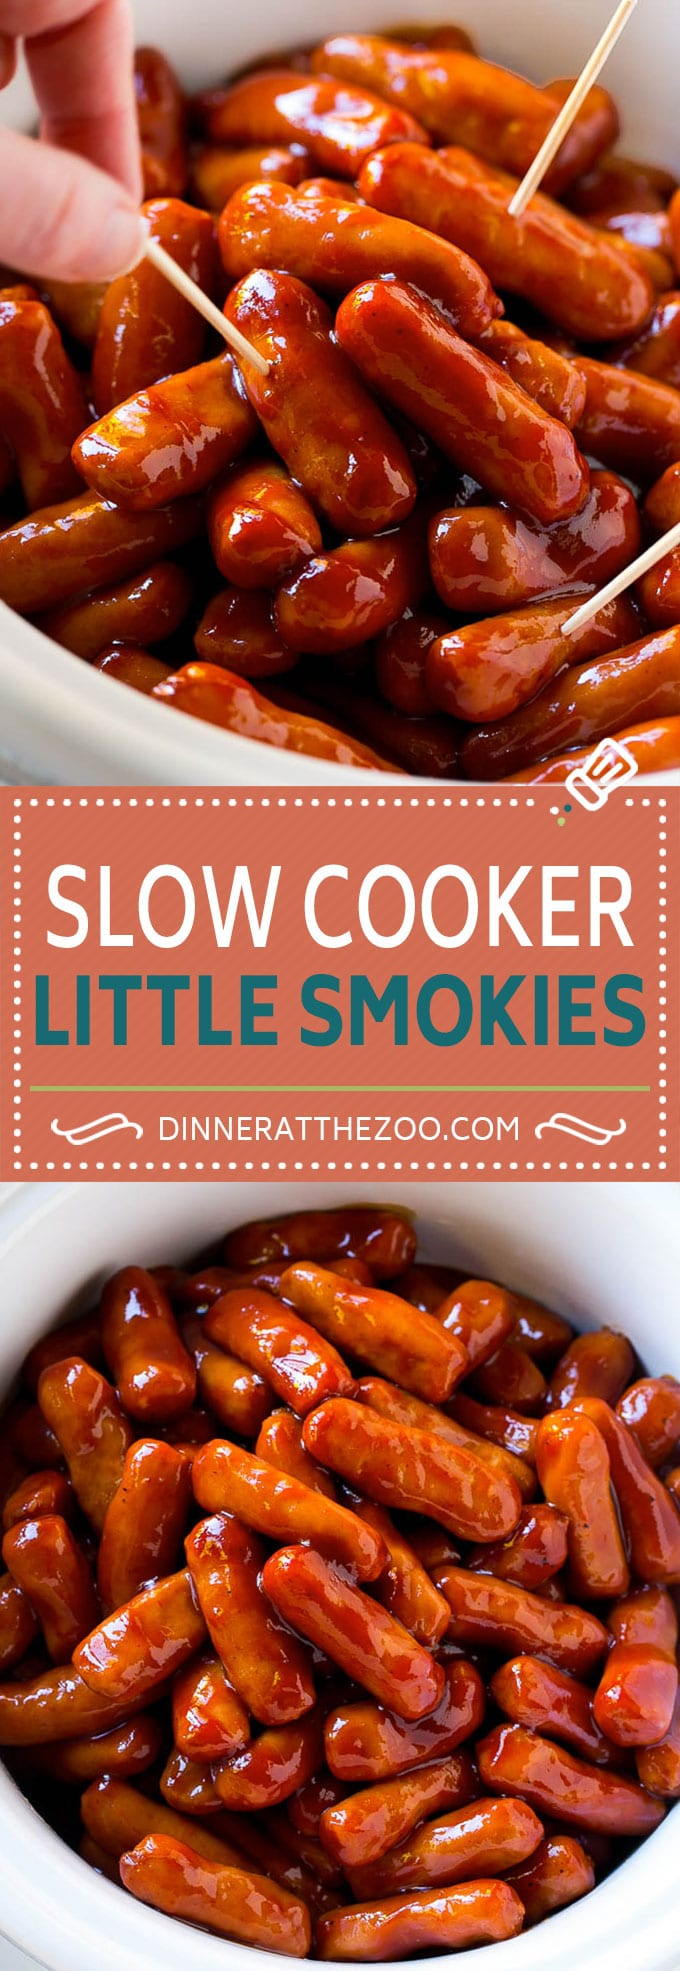 These slow cooker little smokies are coated in a sweet and savory glaze and slow cooked to perfection. Perfect for game day!